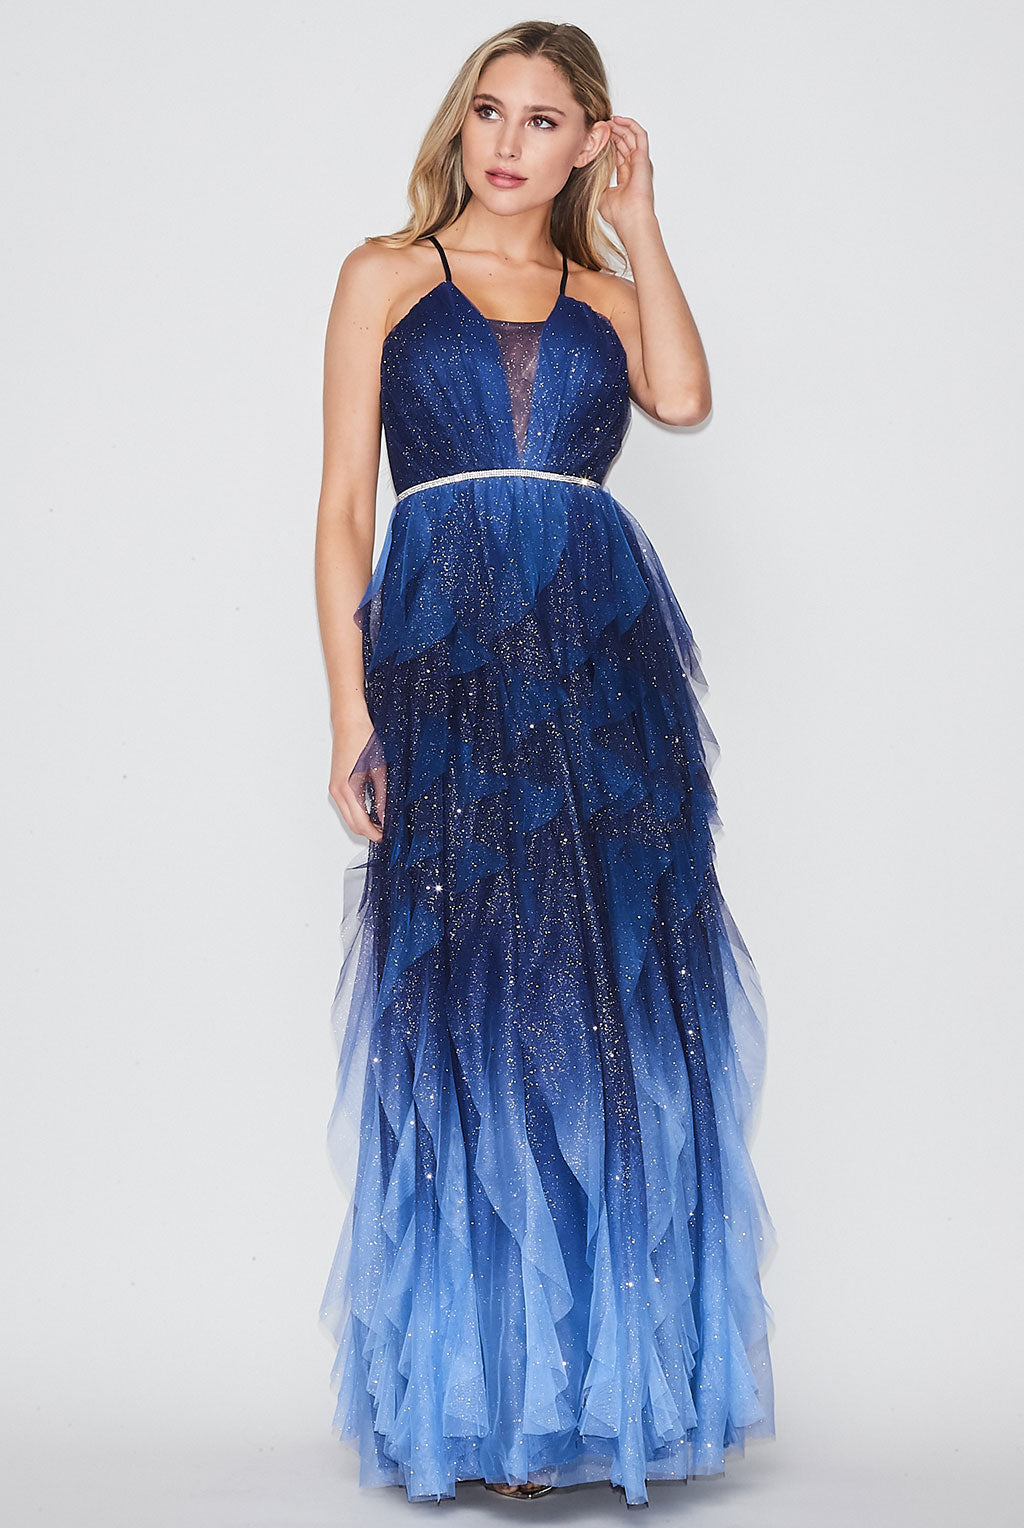 Teeze Me | Spaghetti Strap Ombre Long Prom Dress | Royal/Perri